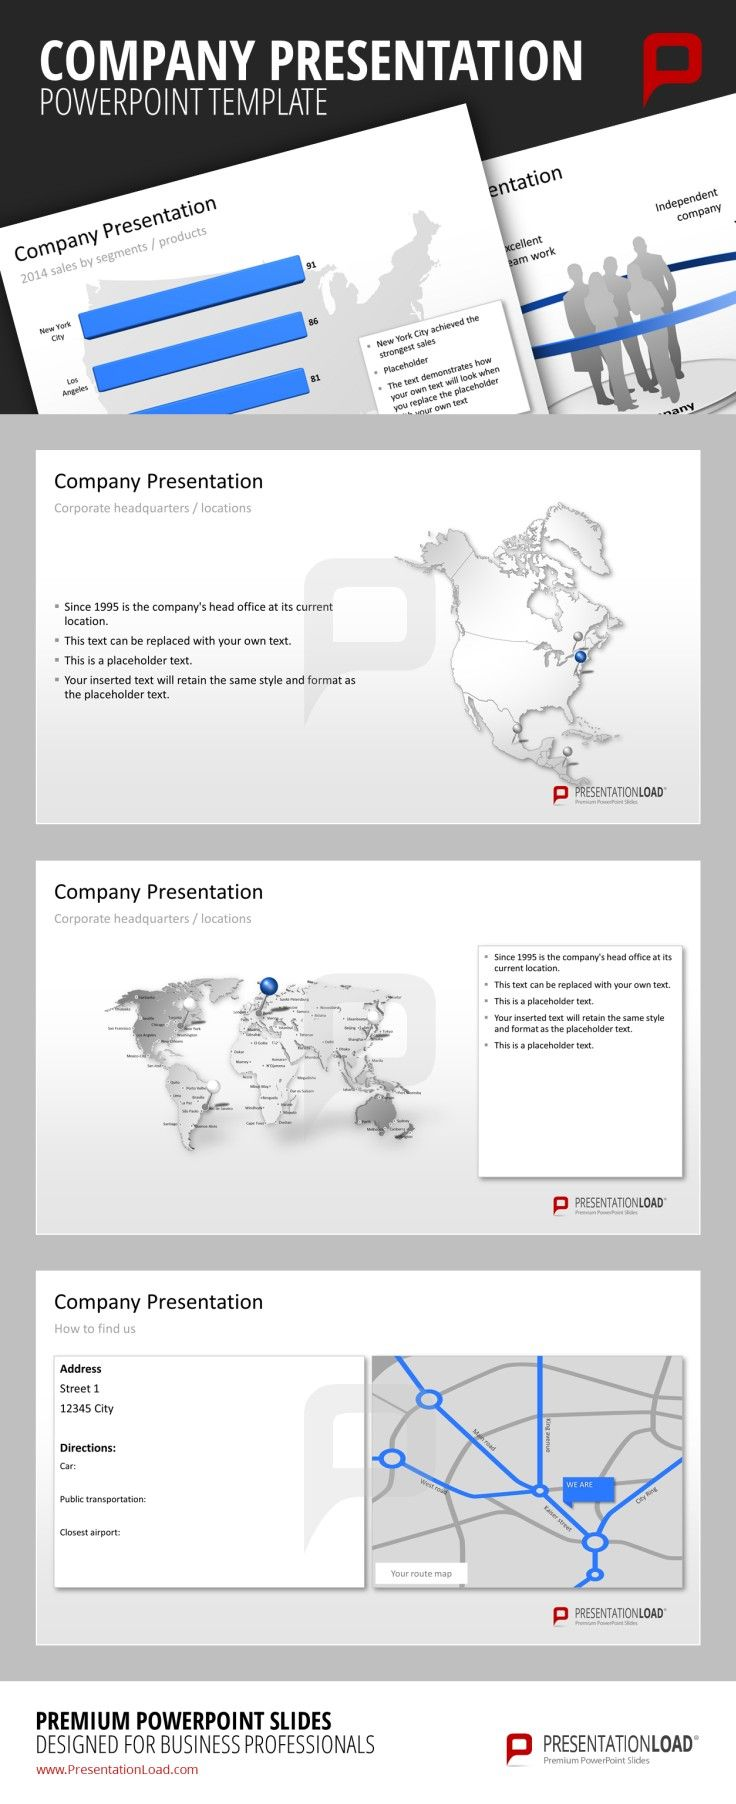 company presentation powerpoint templates the company presentation, Modern powerpoint